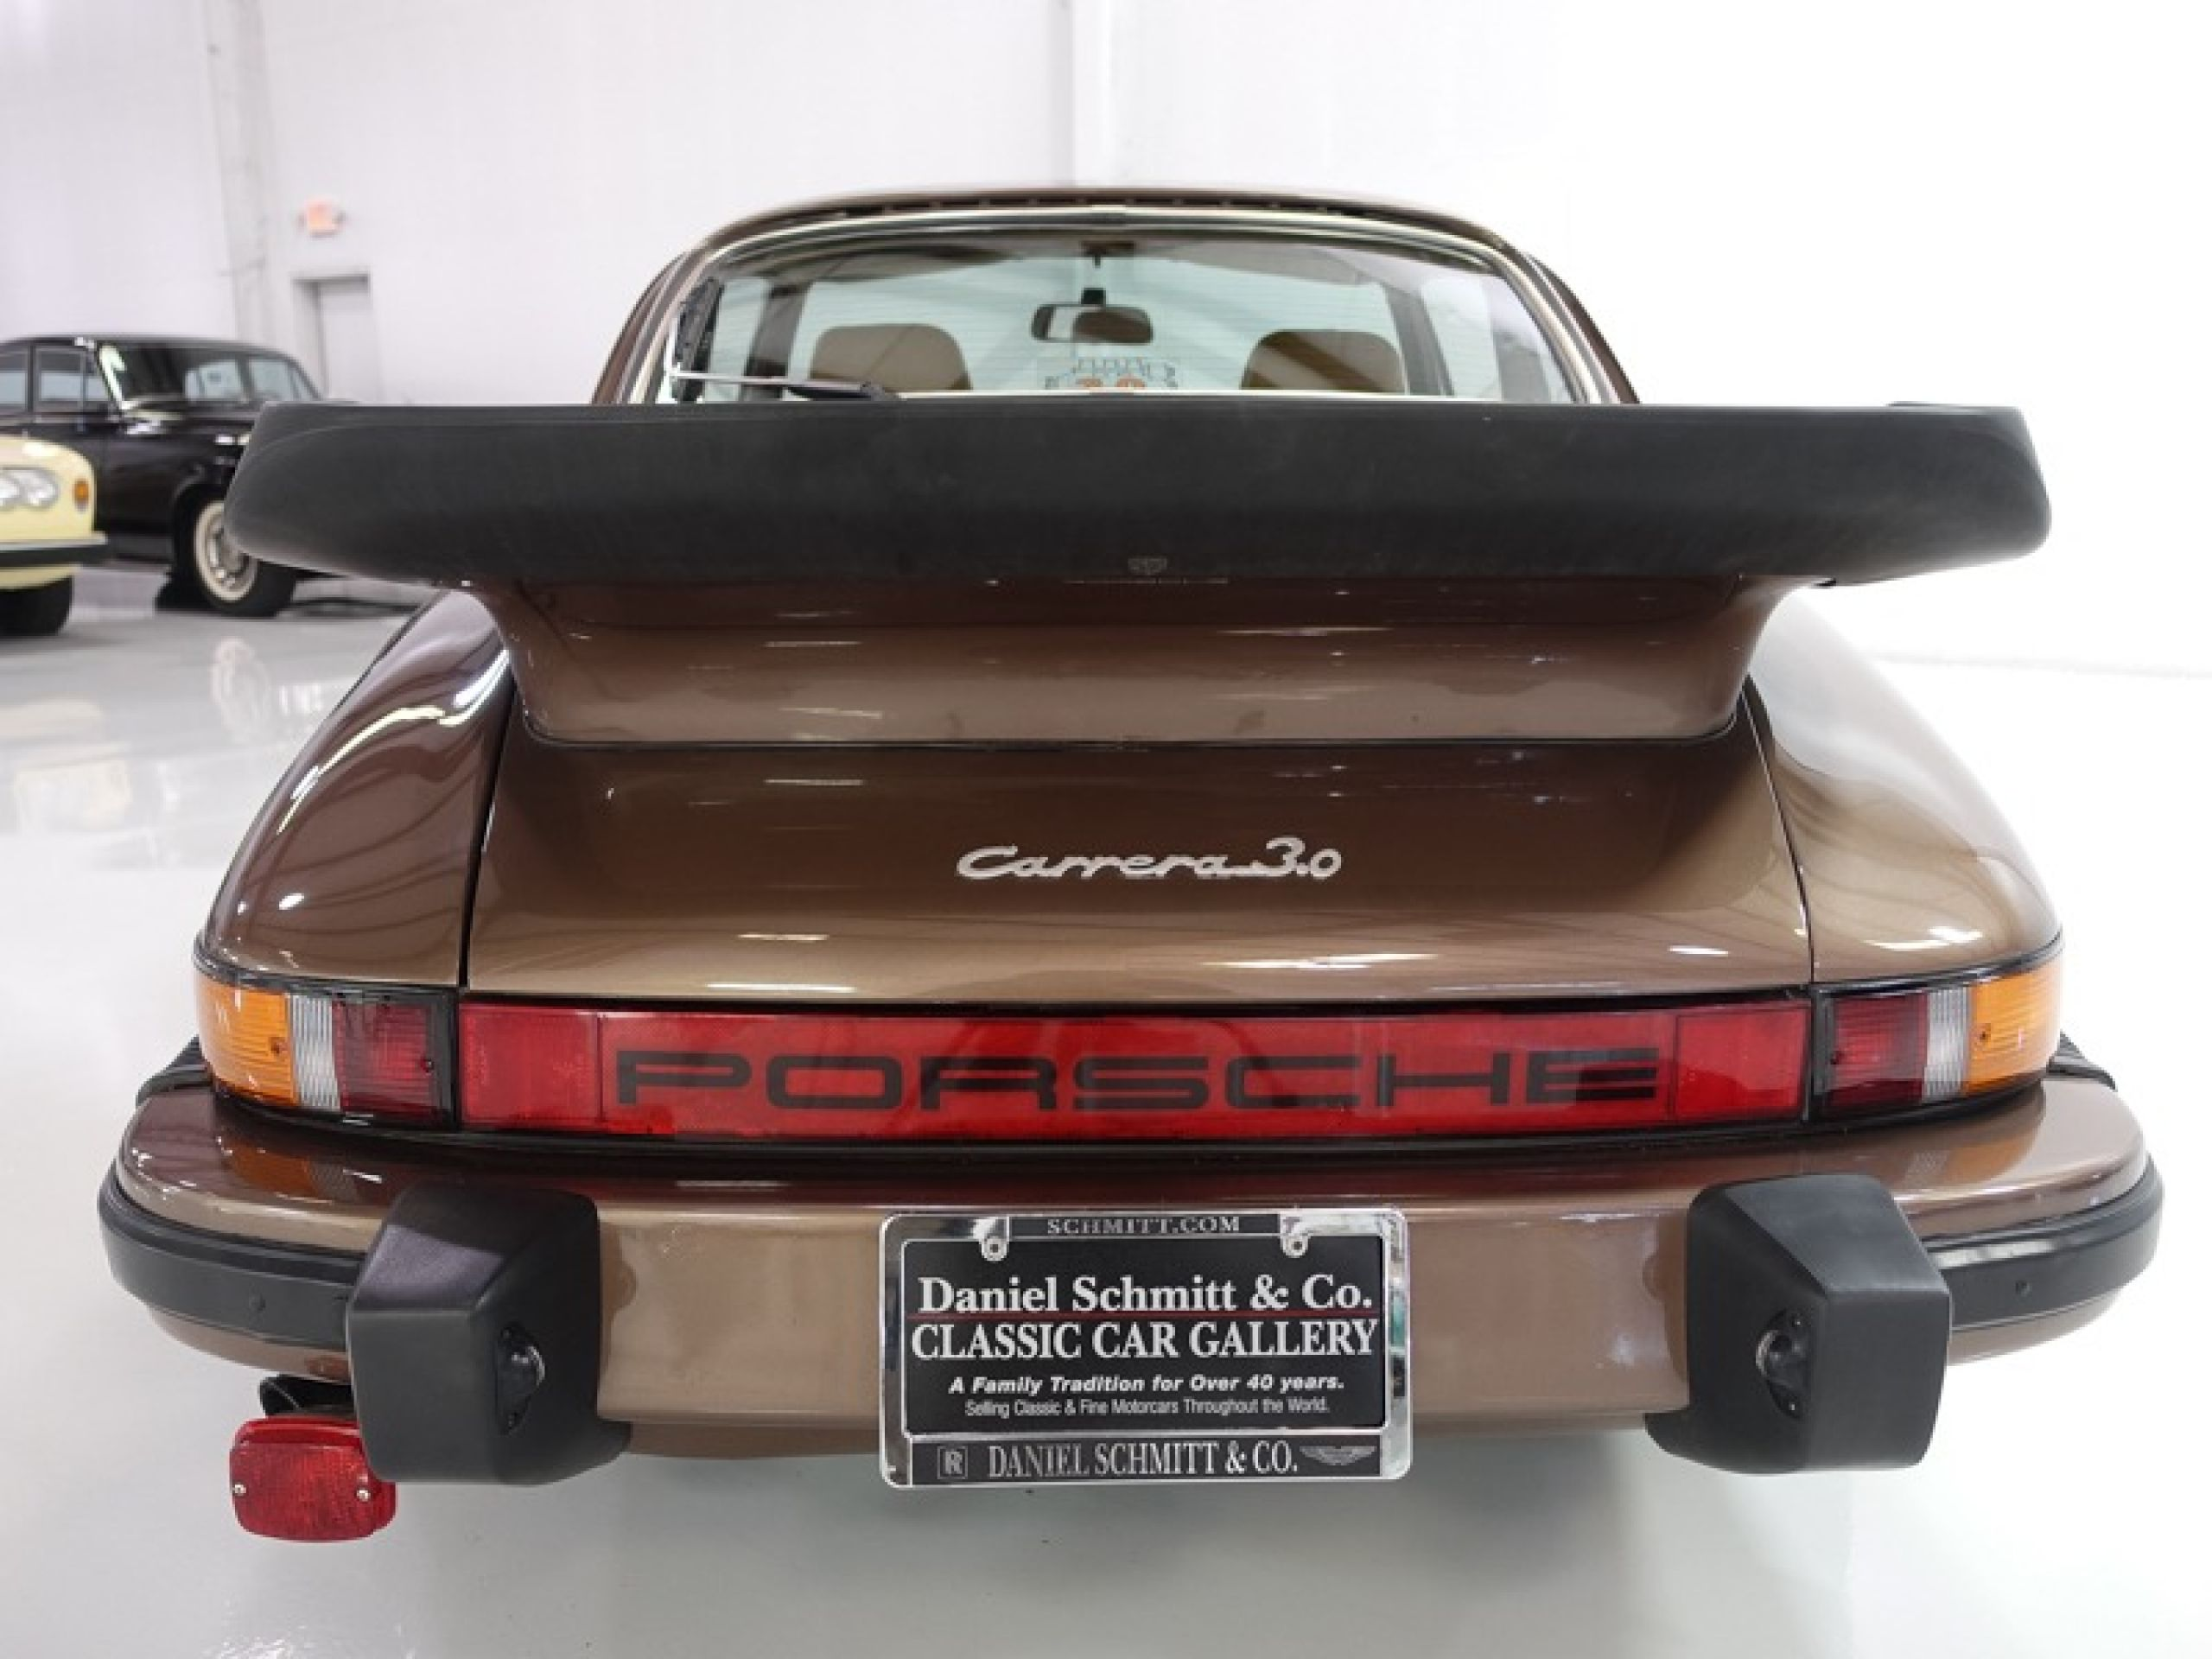 1977 Porsche 911 Carrera 3.0 Coupe